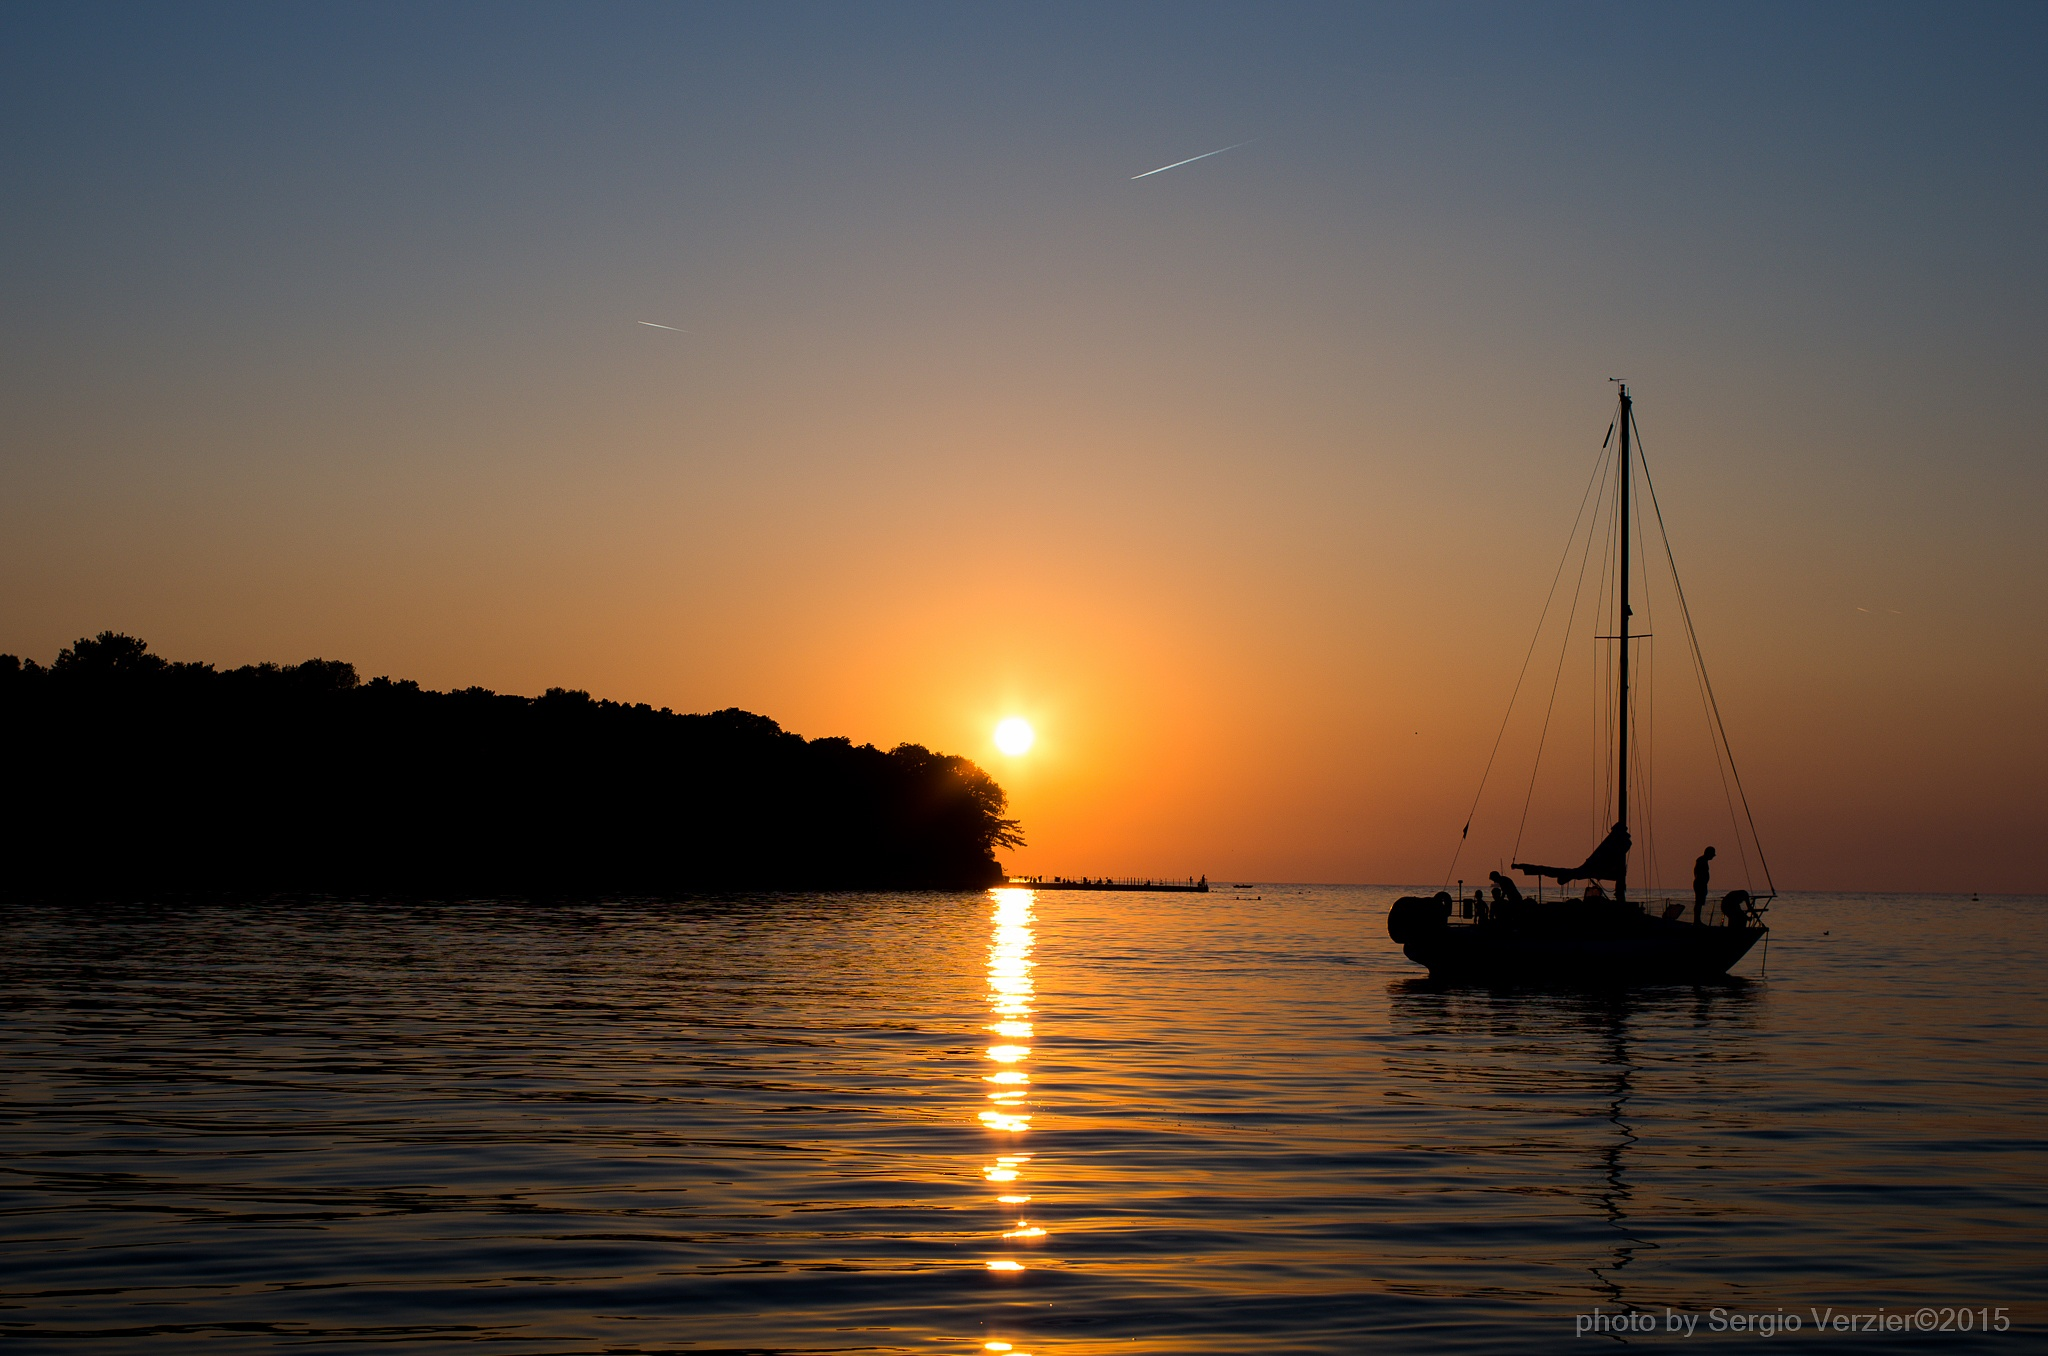 sunset summer season end by Photo by Sergio Verzier